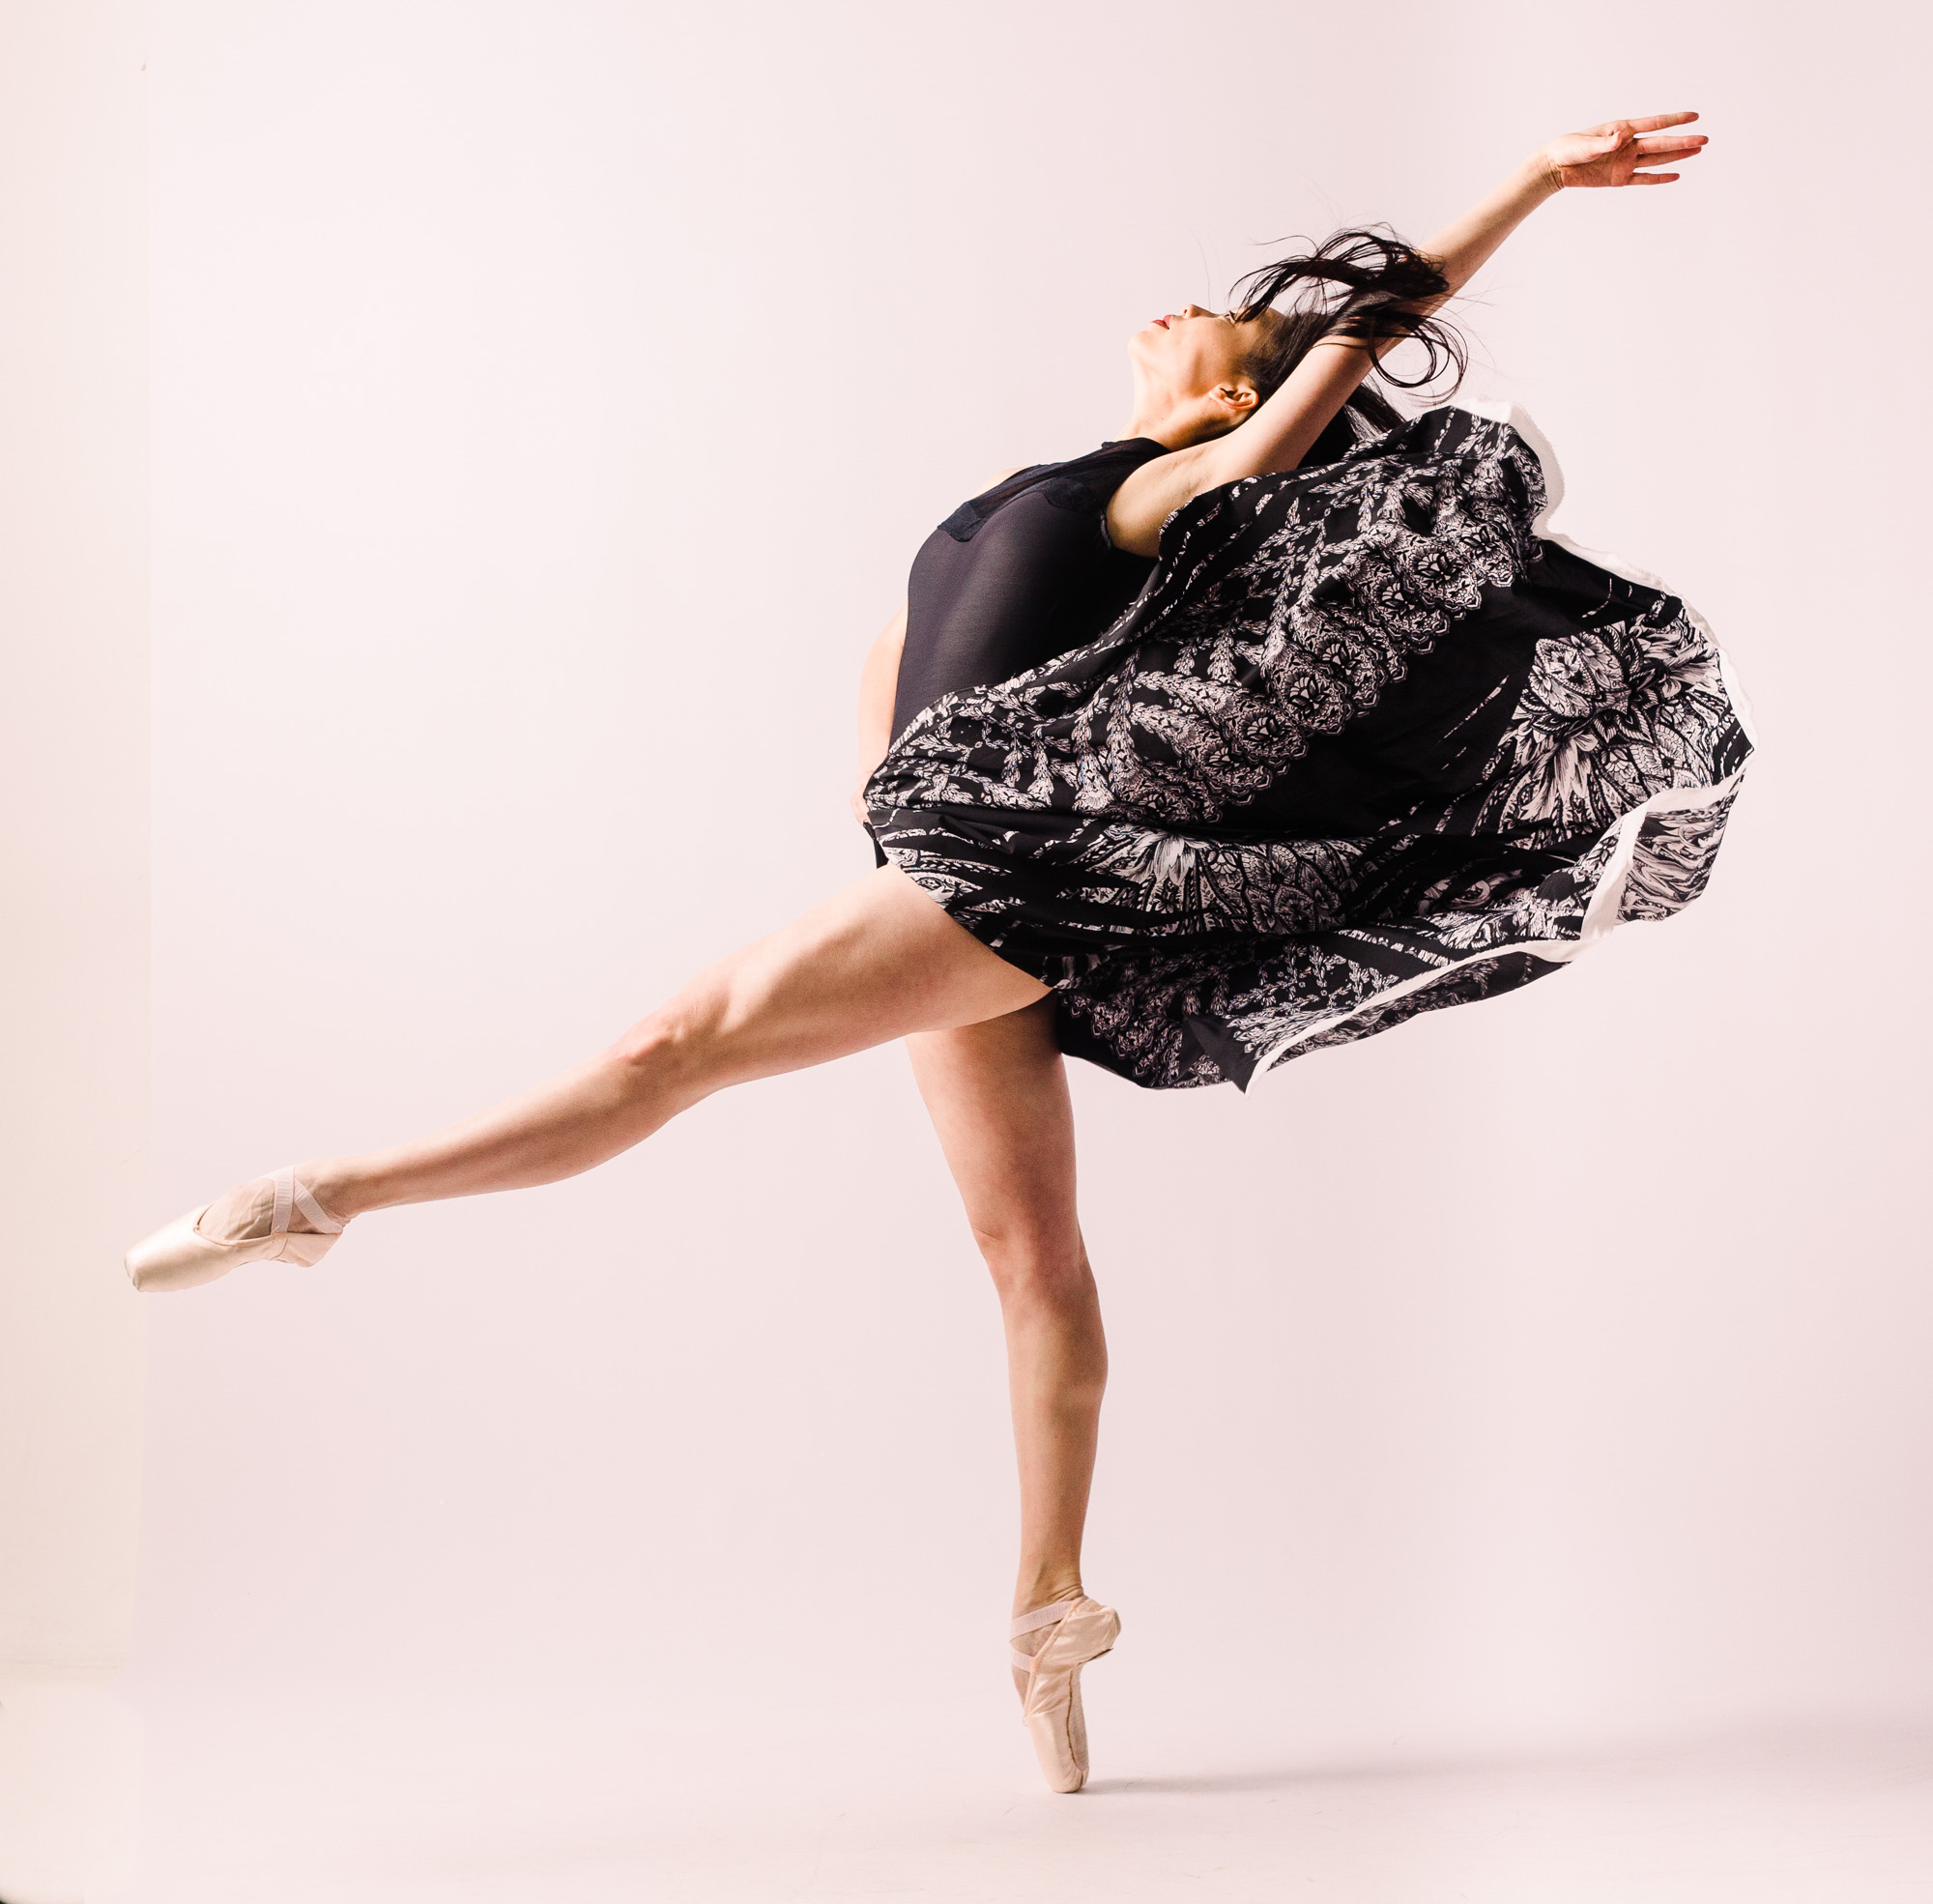 ahowton_AshleyBallet_0518__062_large